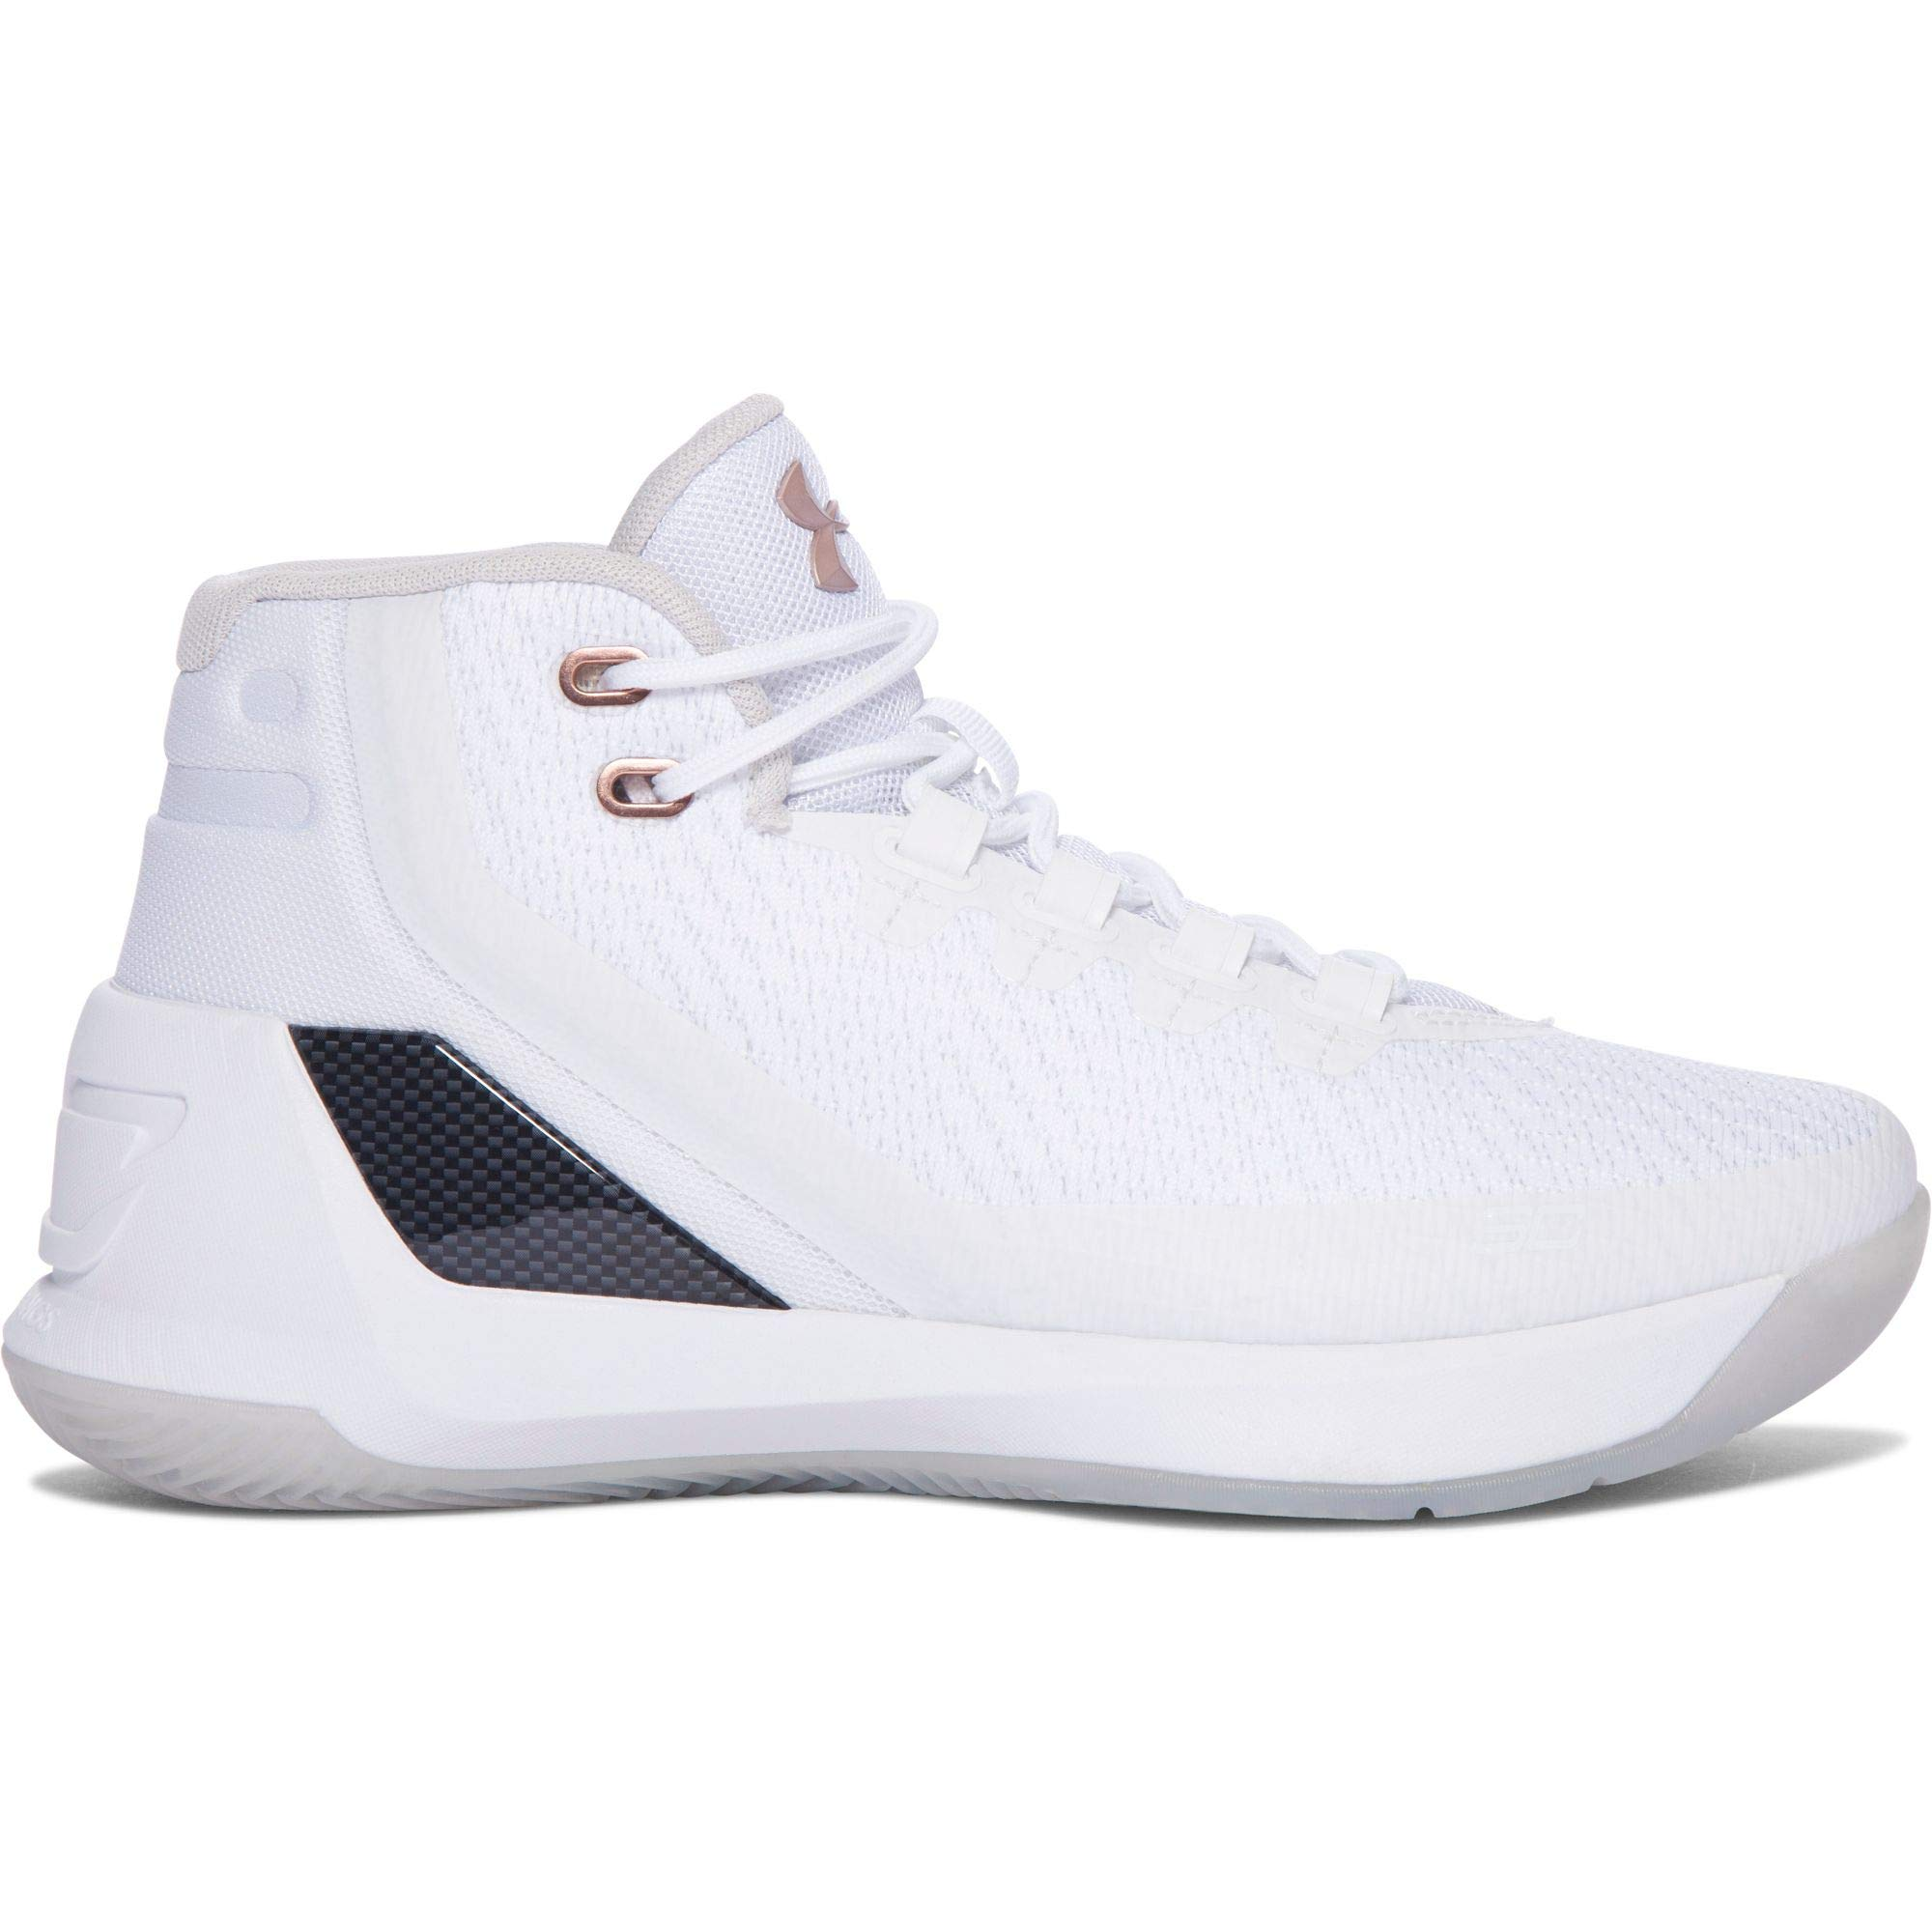 5d2293f68560 Galleon - Under Armour Boys  Grade School UA Curry 3 Basketball Shoes 5  White